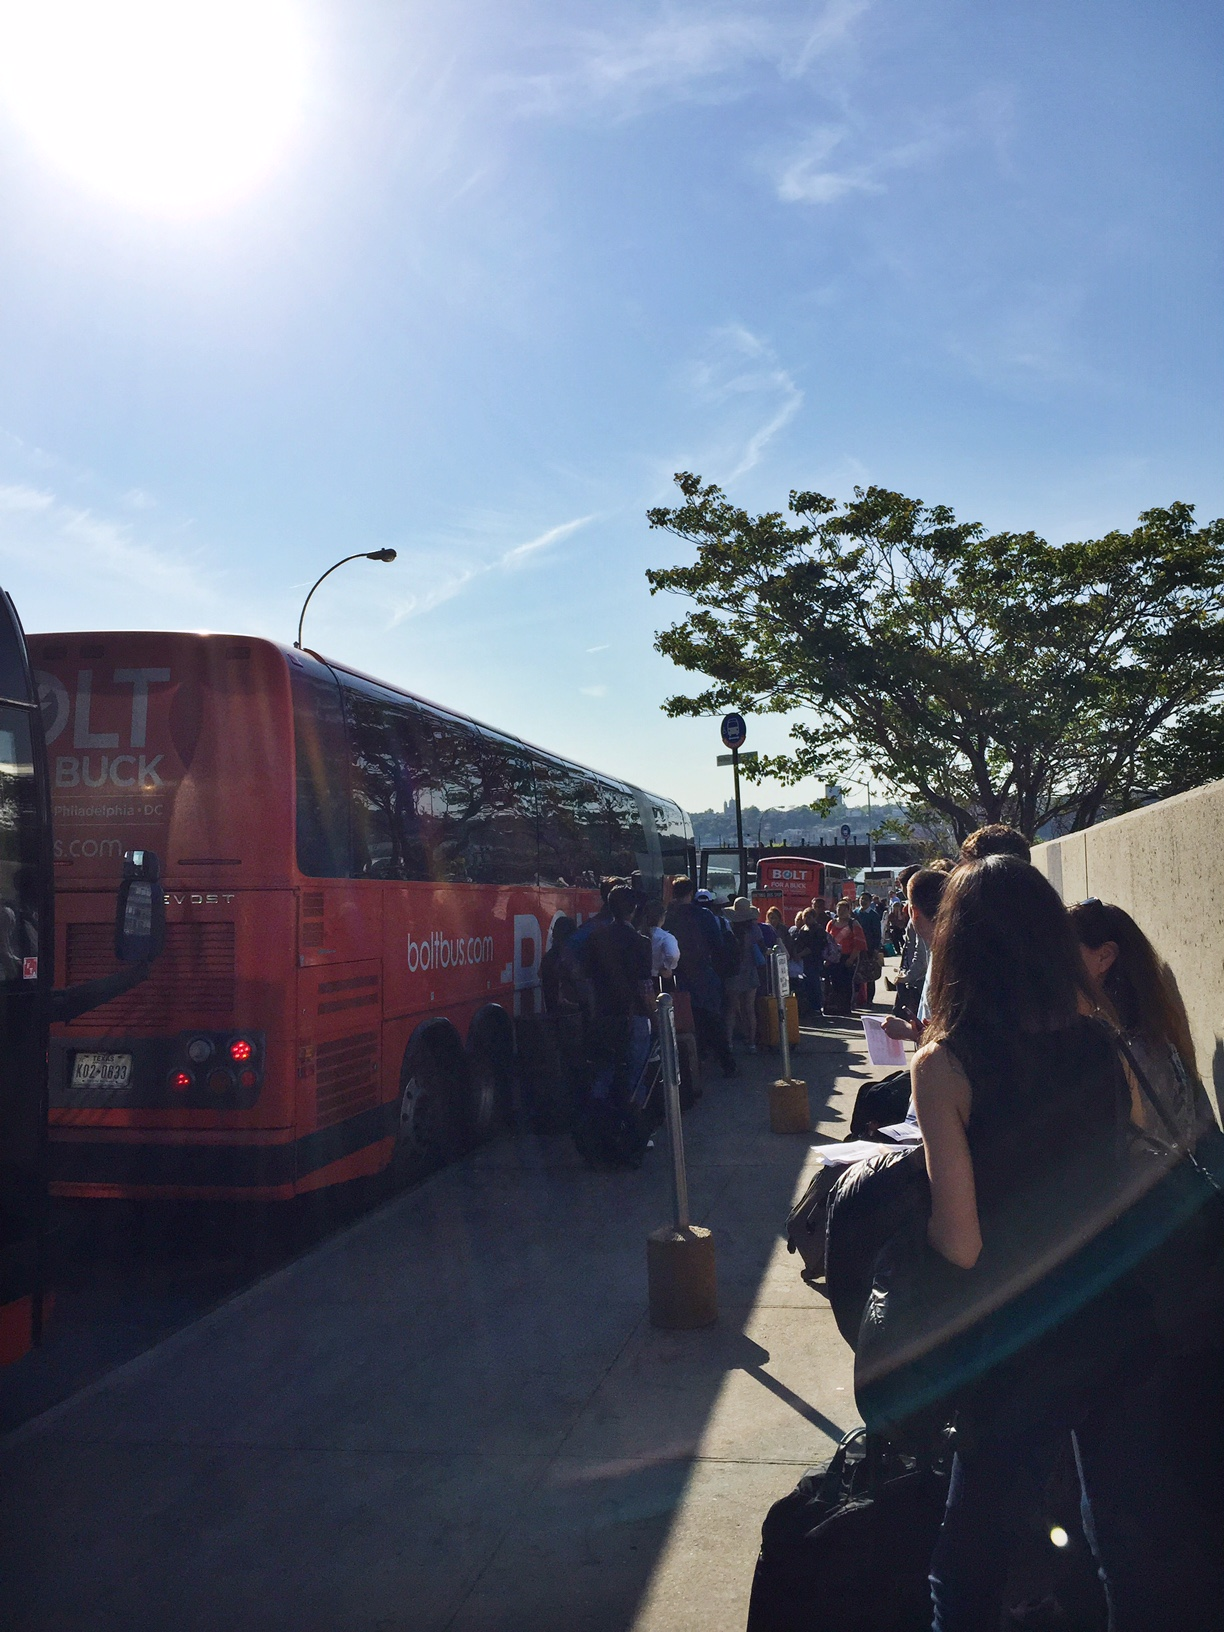 The busses and passengers stretched for over threeblocks.